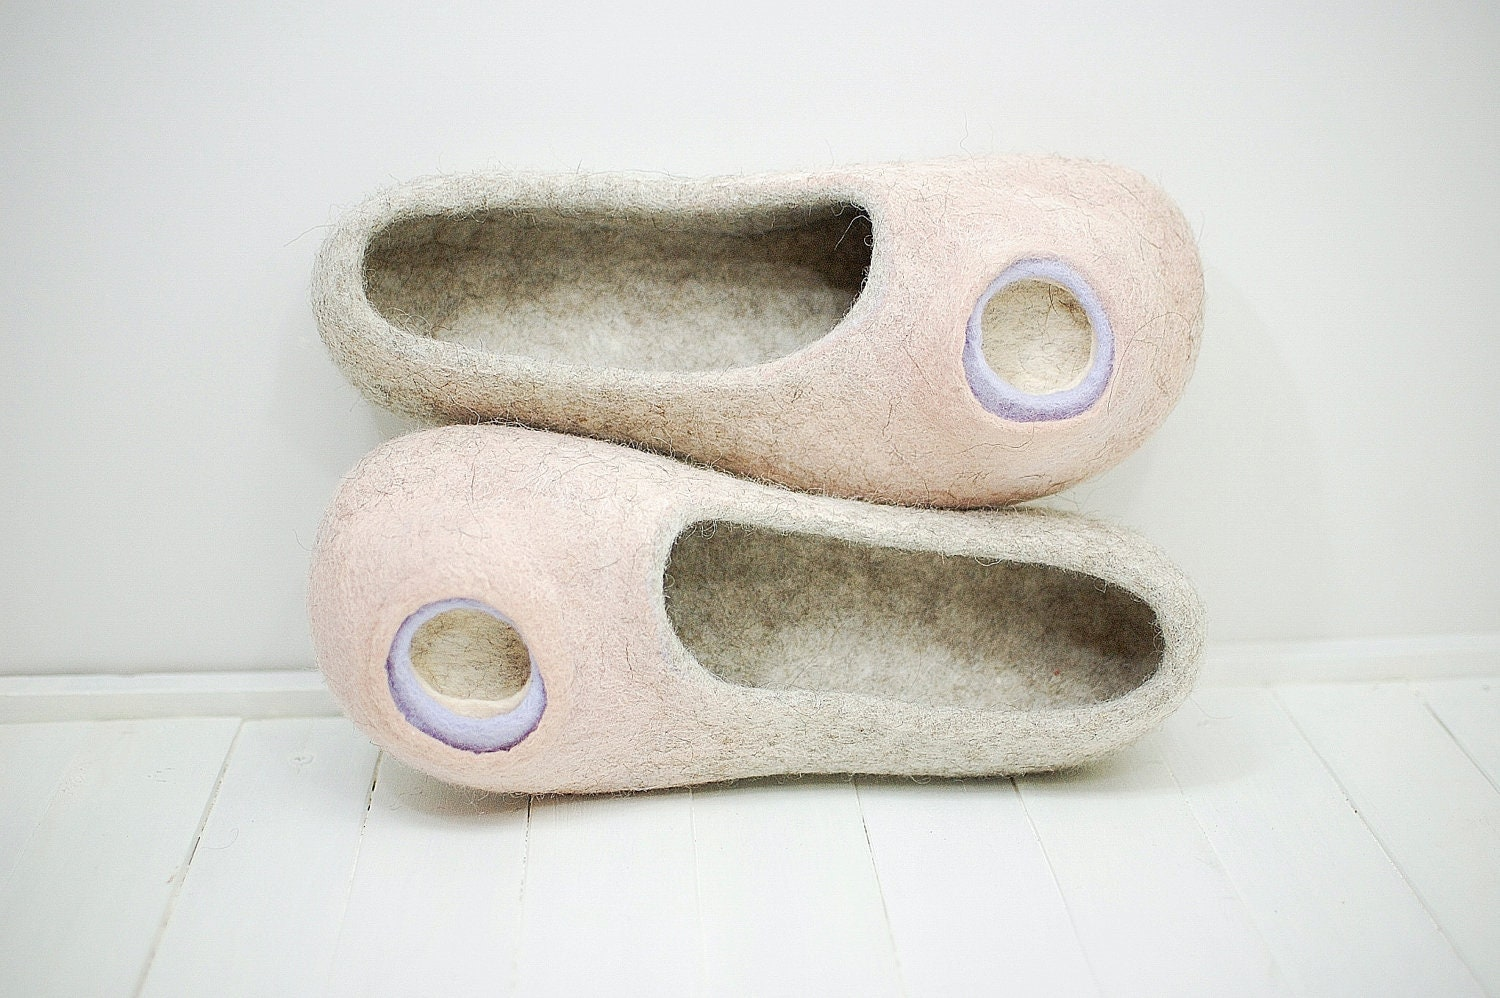 Women Hause shoes - Felted slippers  natural lilac beige, powder and lilac natural 76ae1a